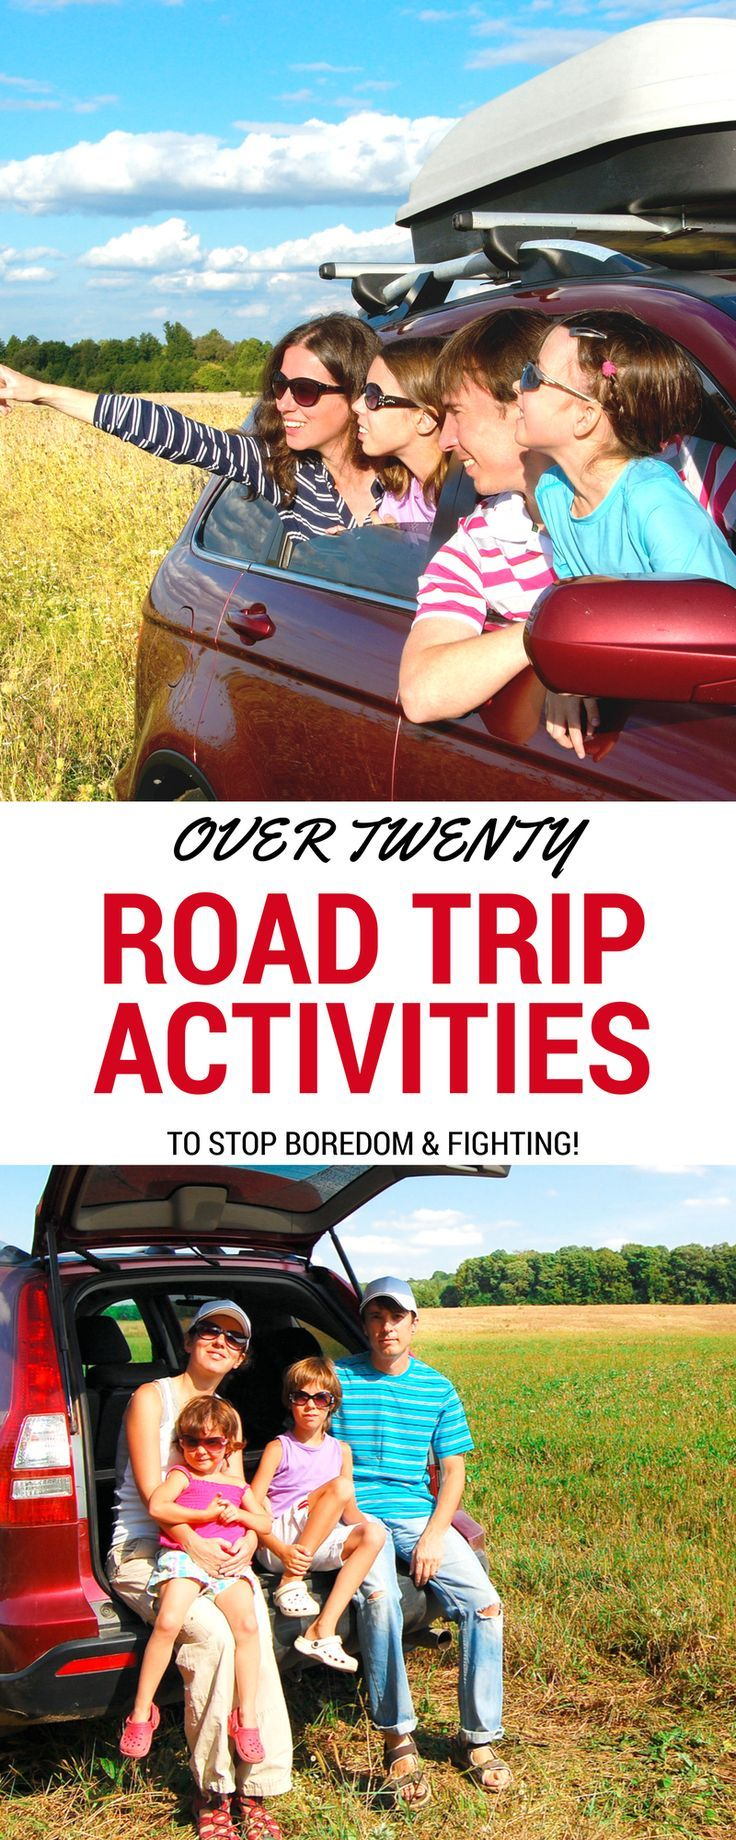 Over 20 Fun Road Trip Ideas for Kids    Pinterest   Family trips     These printable game and education worksheets make your next family trip  more exciting